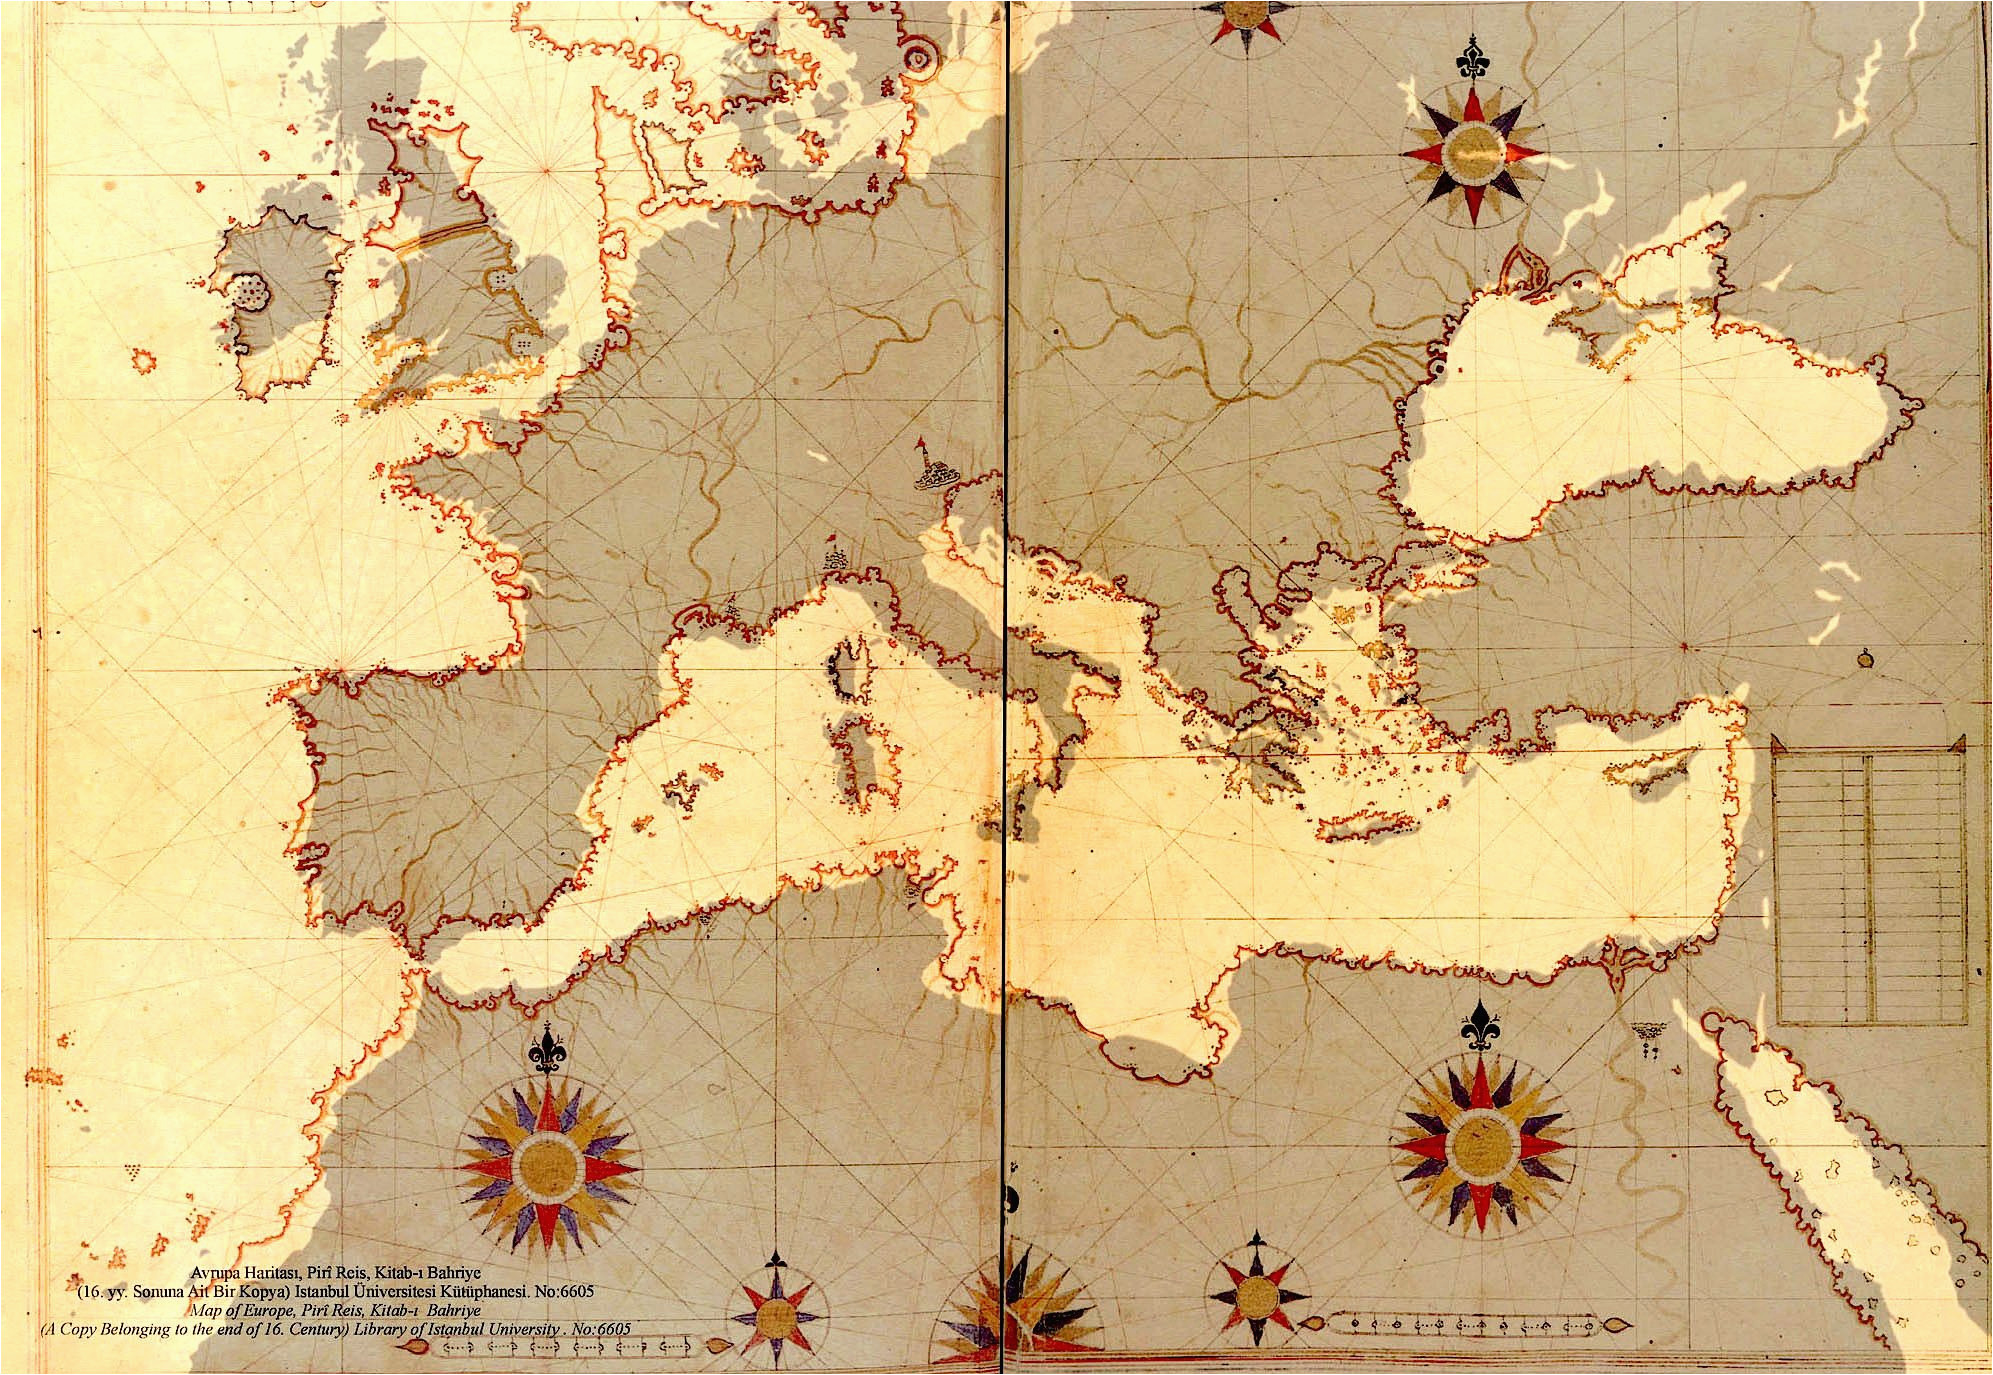 Europe 16th Century Map 16th Century Ottoman Map Of Europe On A Modern Map Of Europe